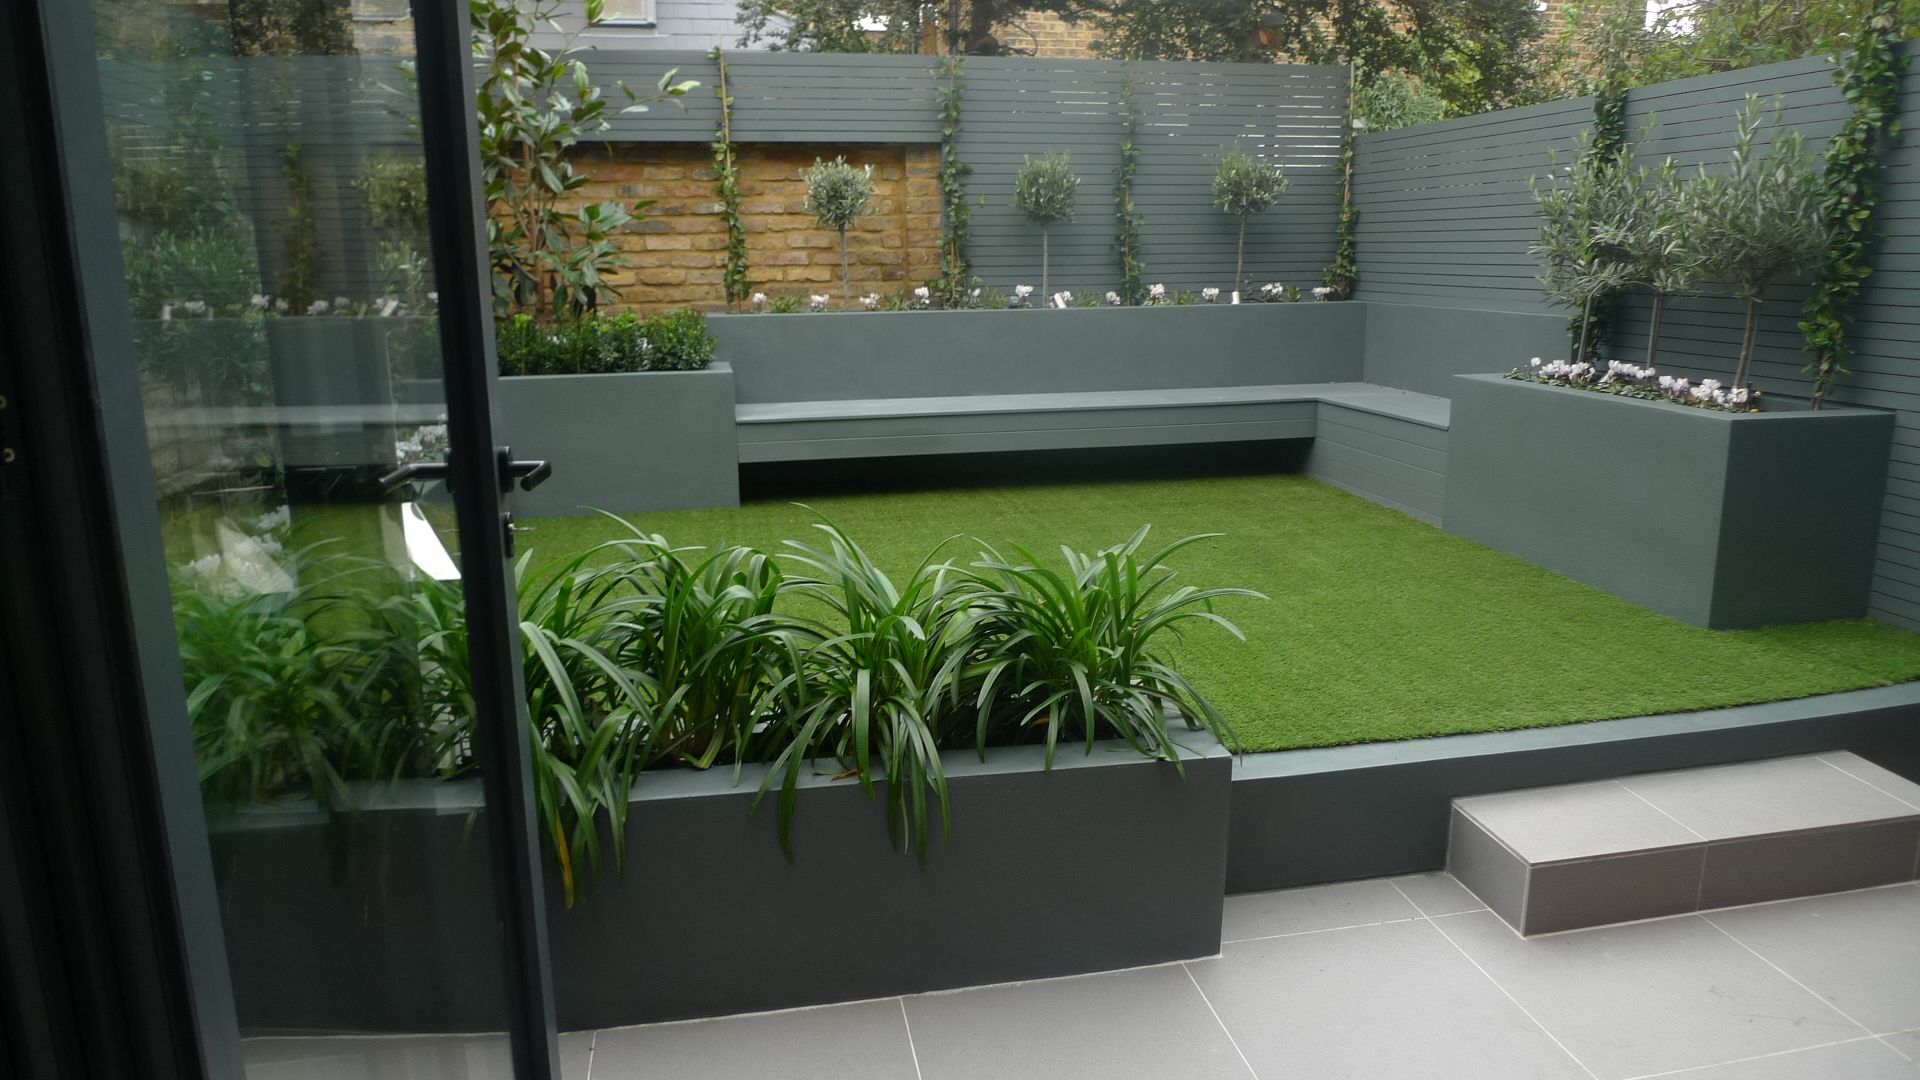 Garden Design With Artificial Grass fence london garden design | yard | pinterest | low maintenance